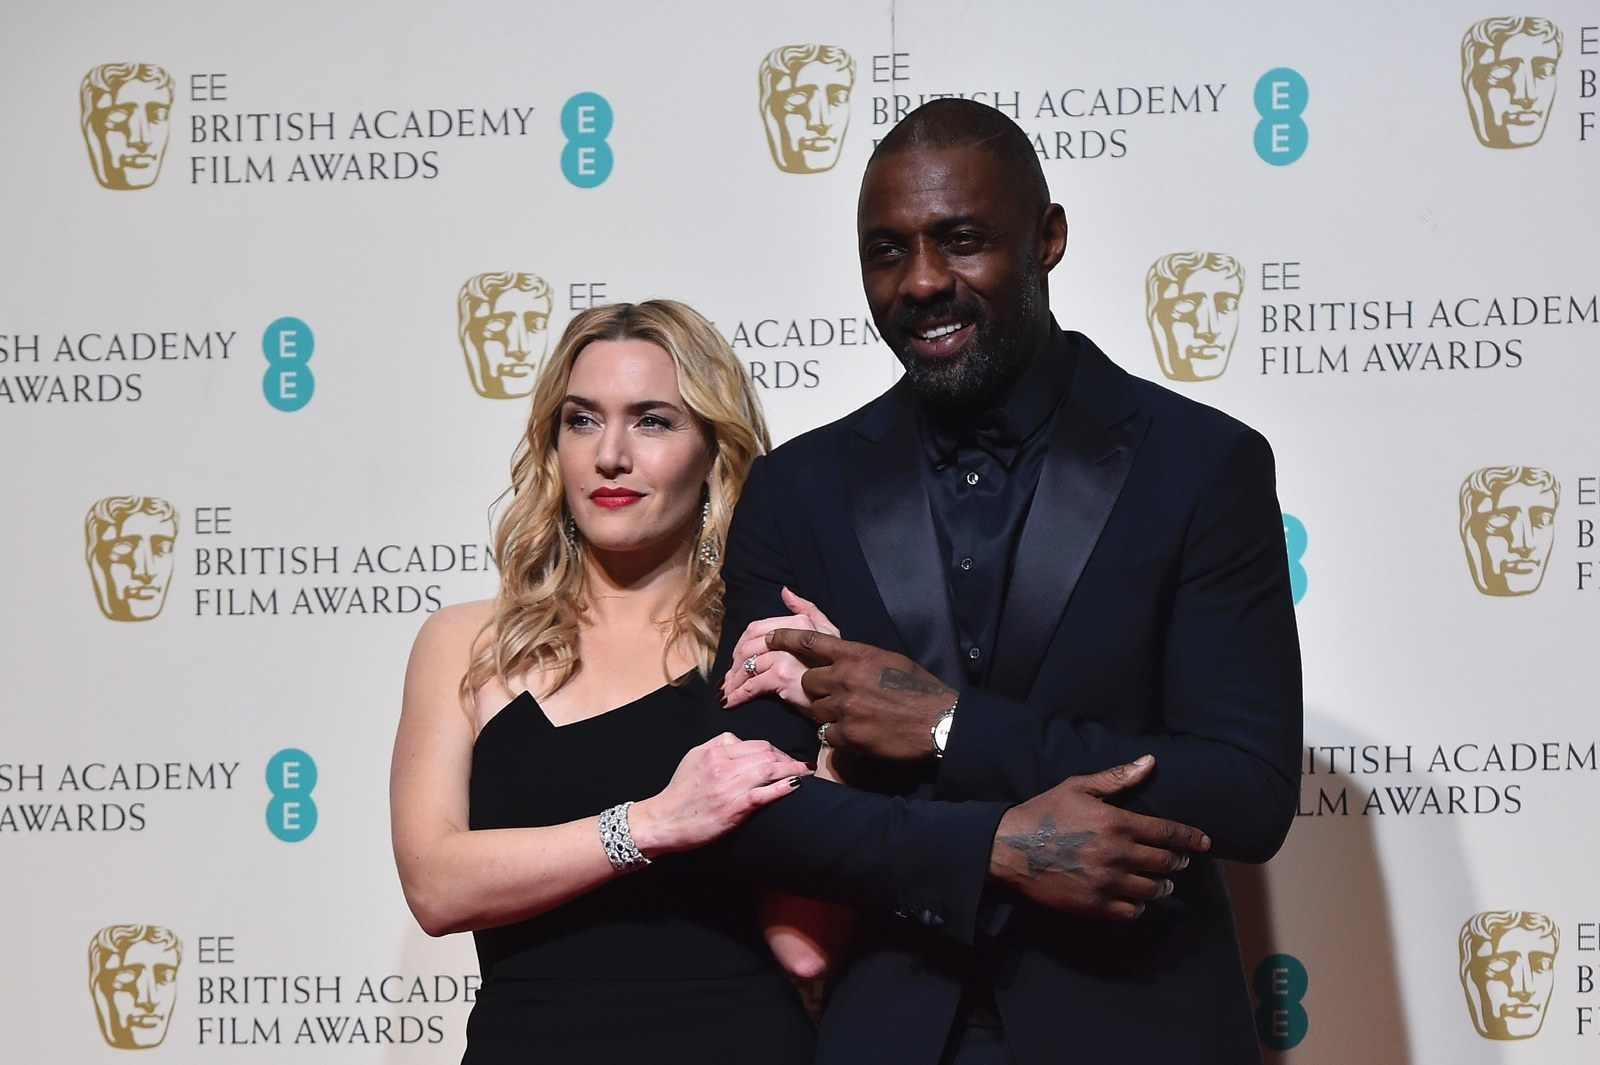 sub buzz 22161 1507558892 1?downsize=715 *&output format=auto&output quality=auto here's why idris elba didn't want kate winslet to take off her